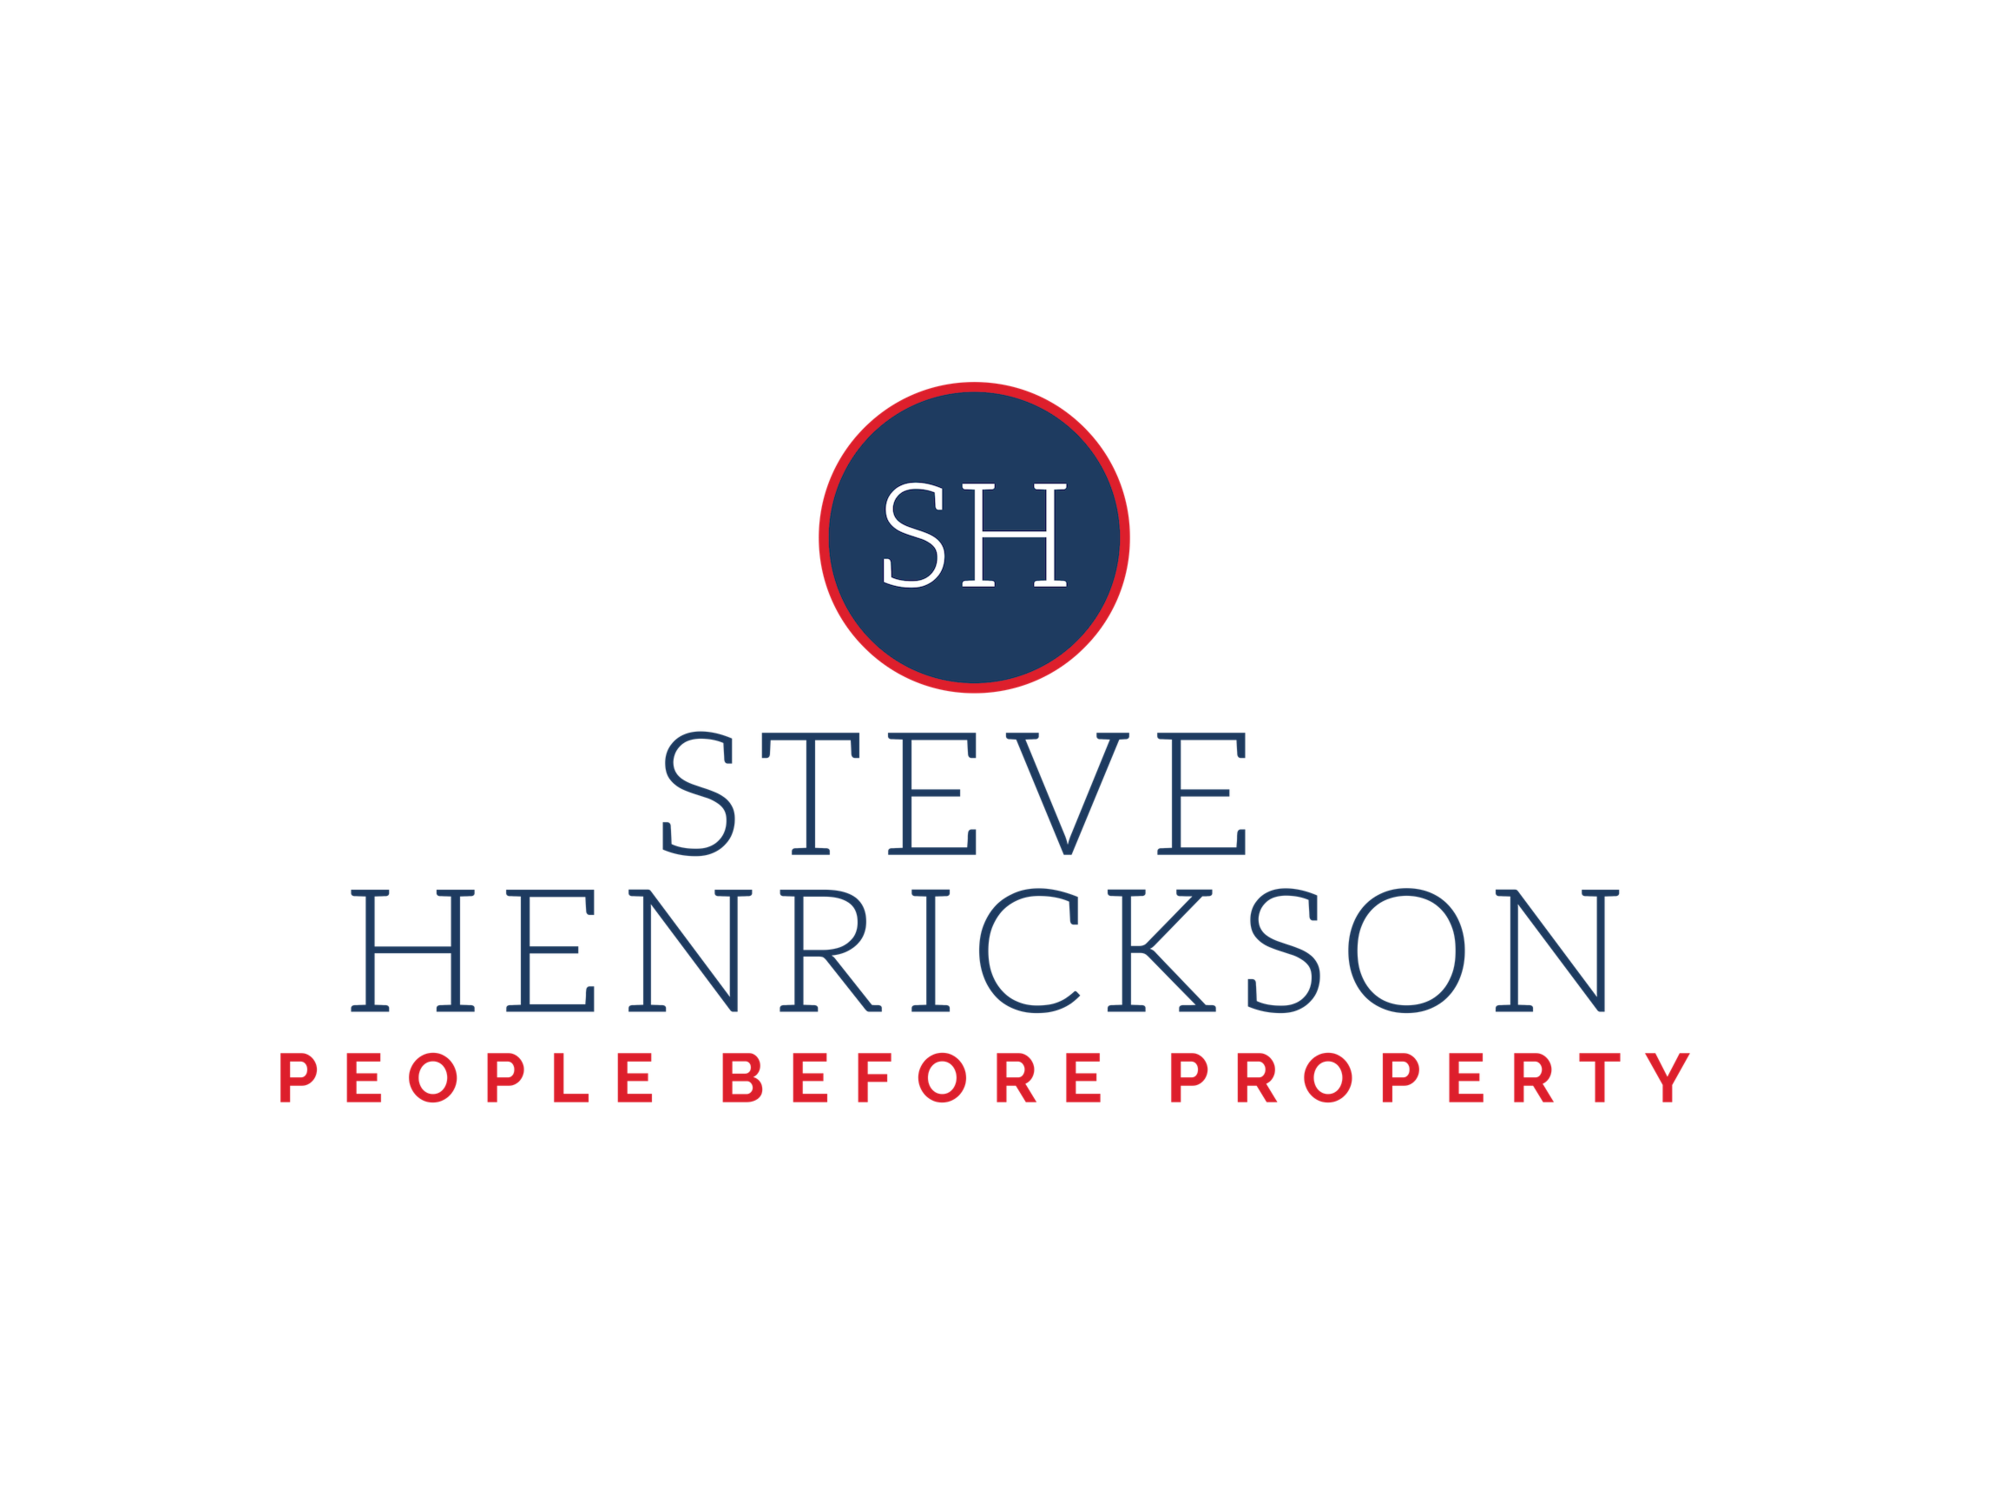 Steve Henrickson Round Table Realtor